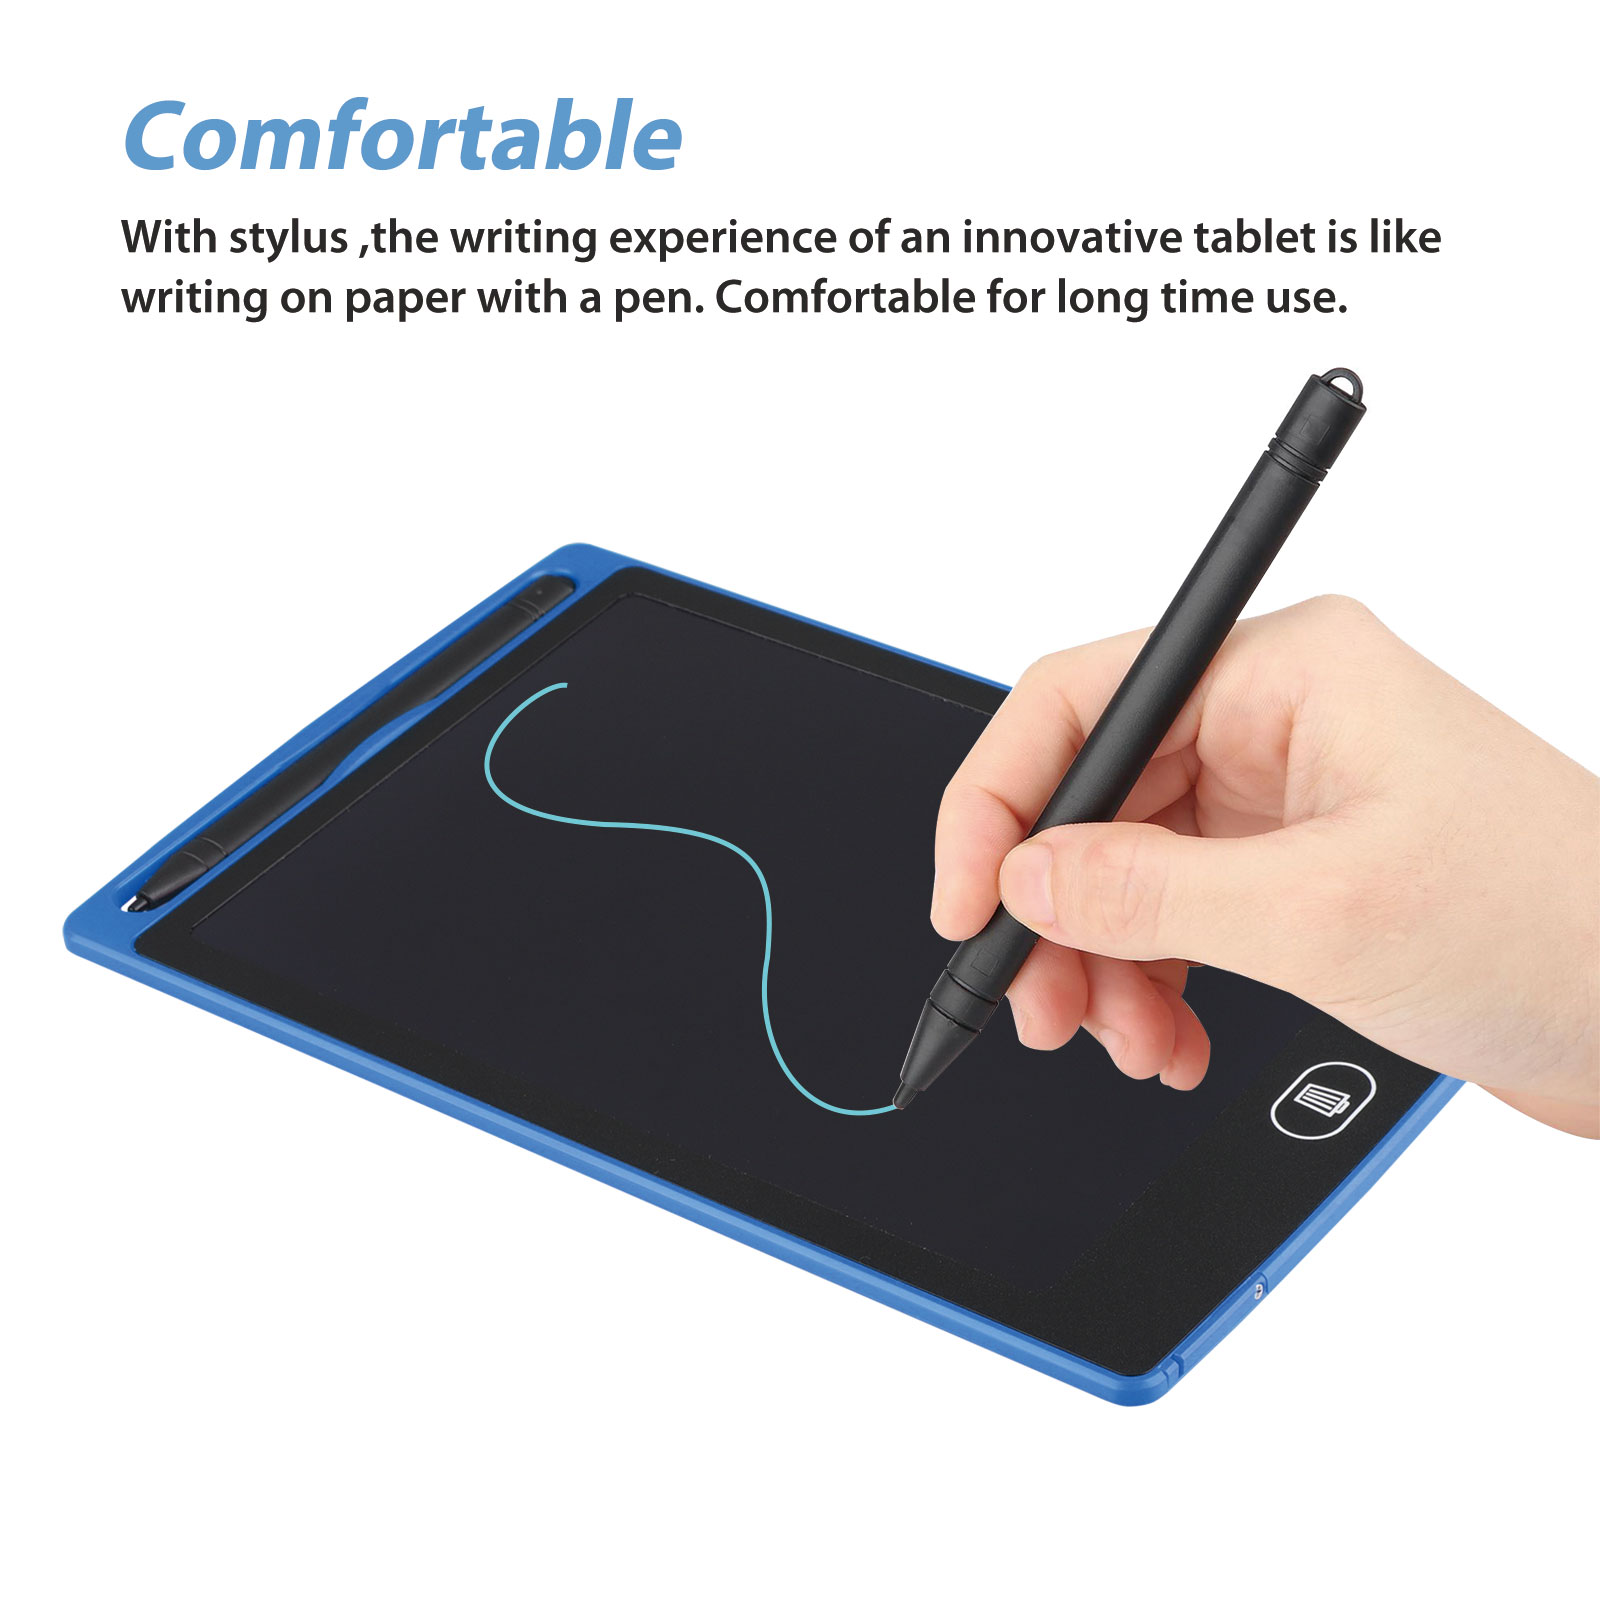 eubell Mini LCD Writing Tablet Drawing Tablet Kids Tablets Doodle Board Drawing Board Gifts for Kids and Adults at Home School and Office